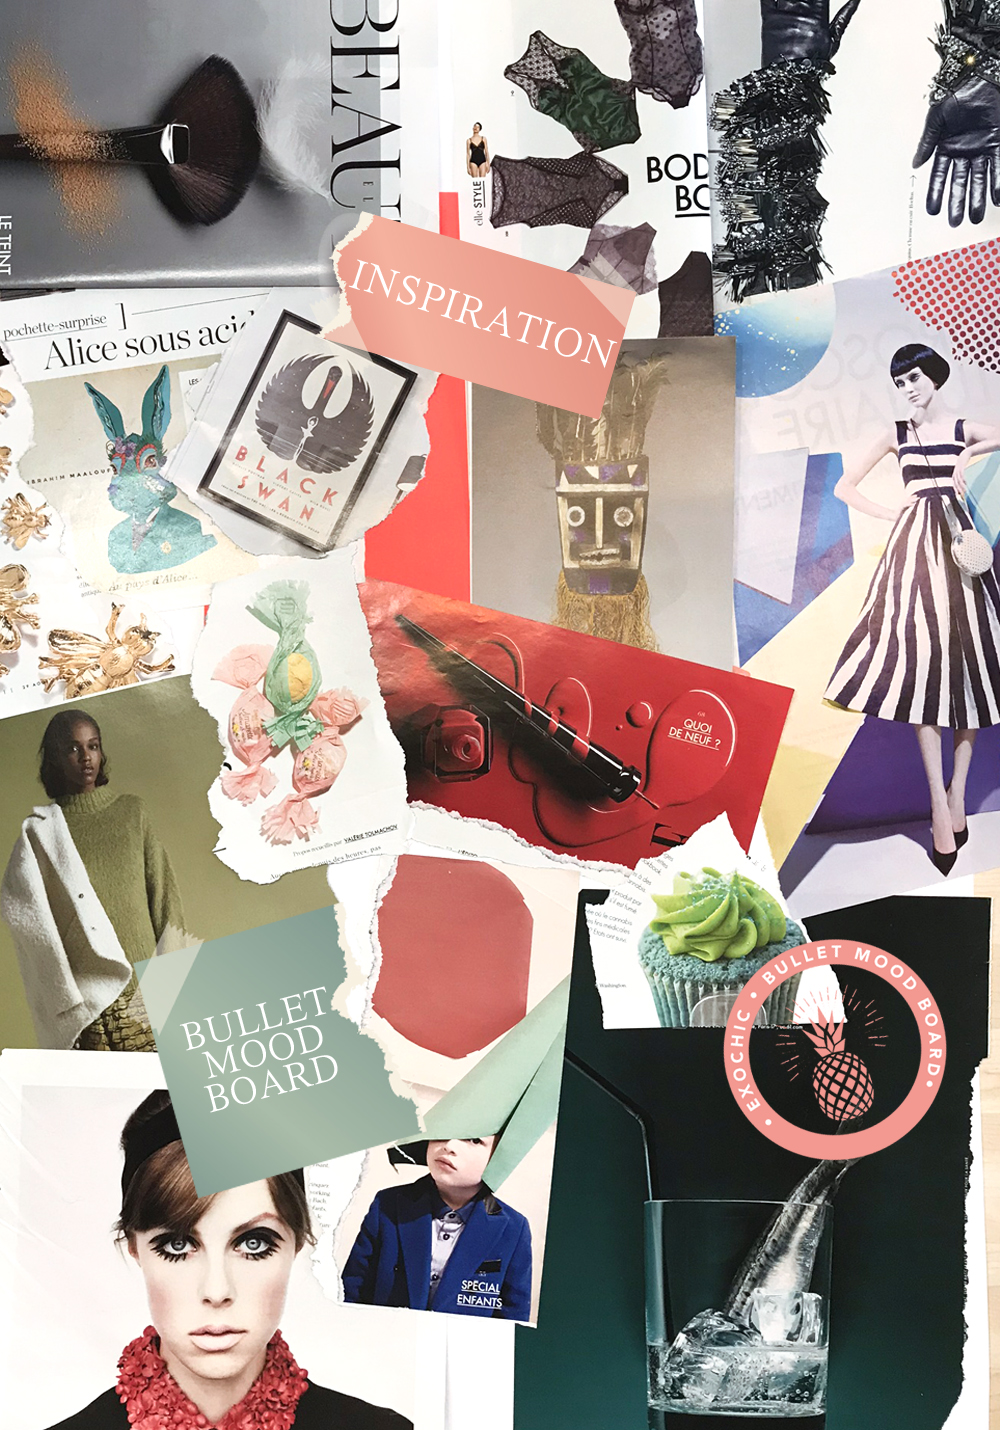 Air Chic Design:disque externe:EXOChic:1 -POSTS:1 - ARTICLES:2018:03 - MARS:03 Vision BOARD:Image blog:Bullet mood board exochic 2.jpg